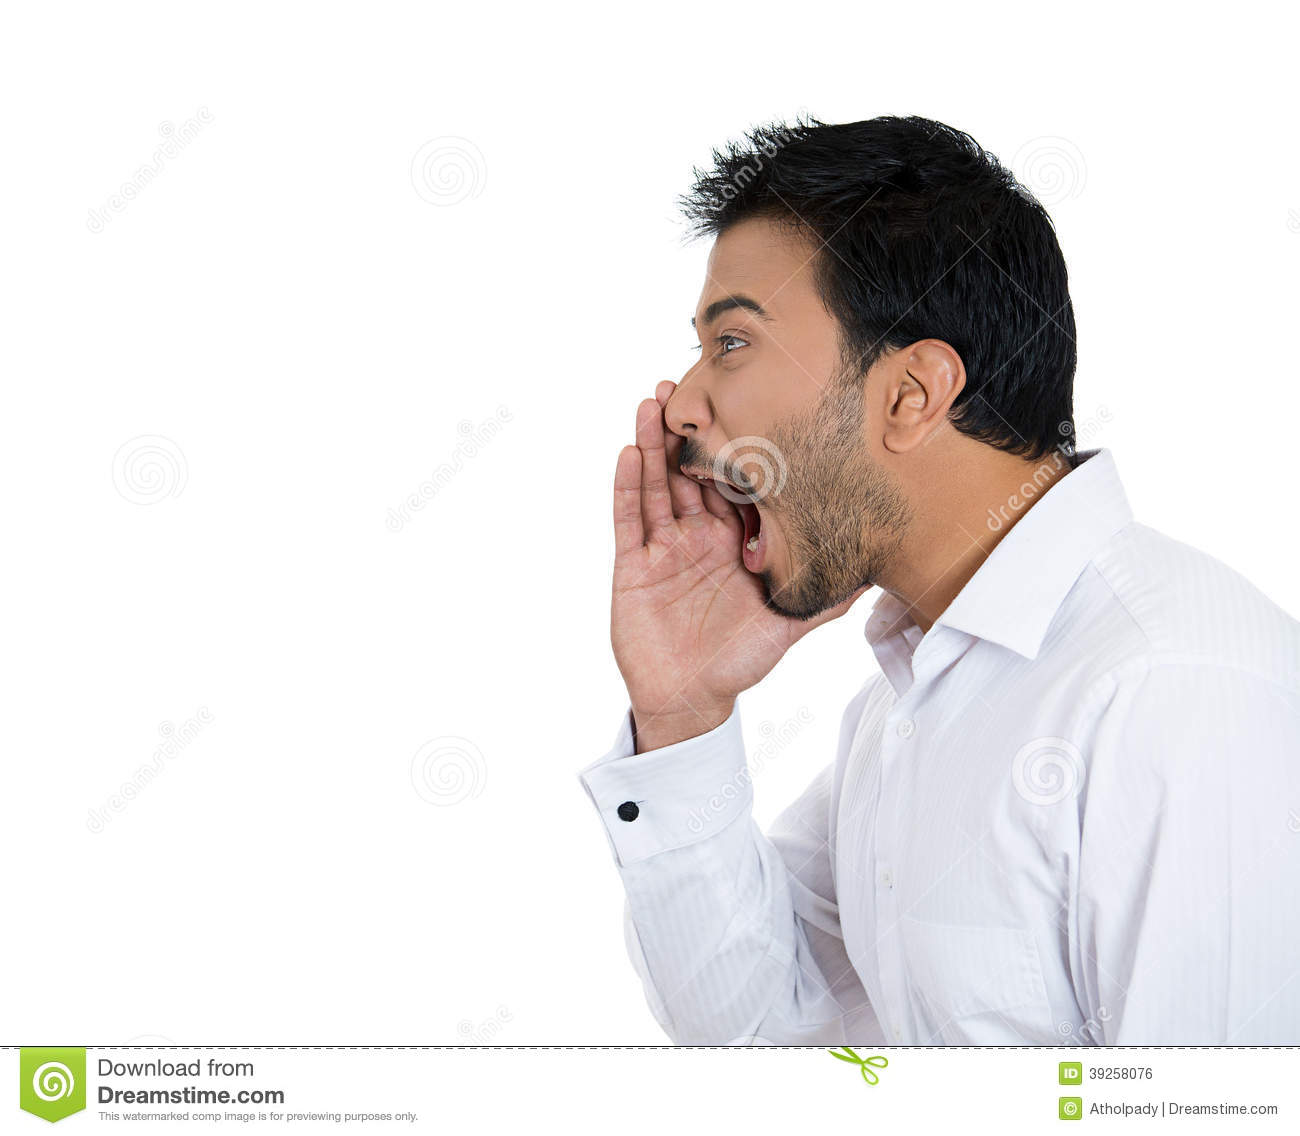 Yelling Man Stock Photo - Image: 39258076